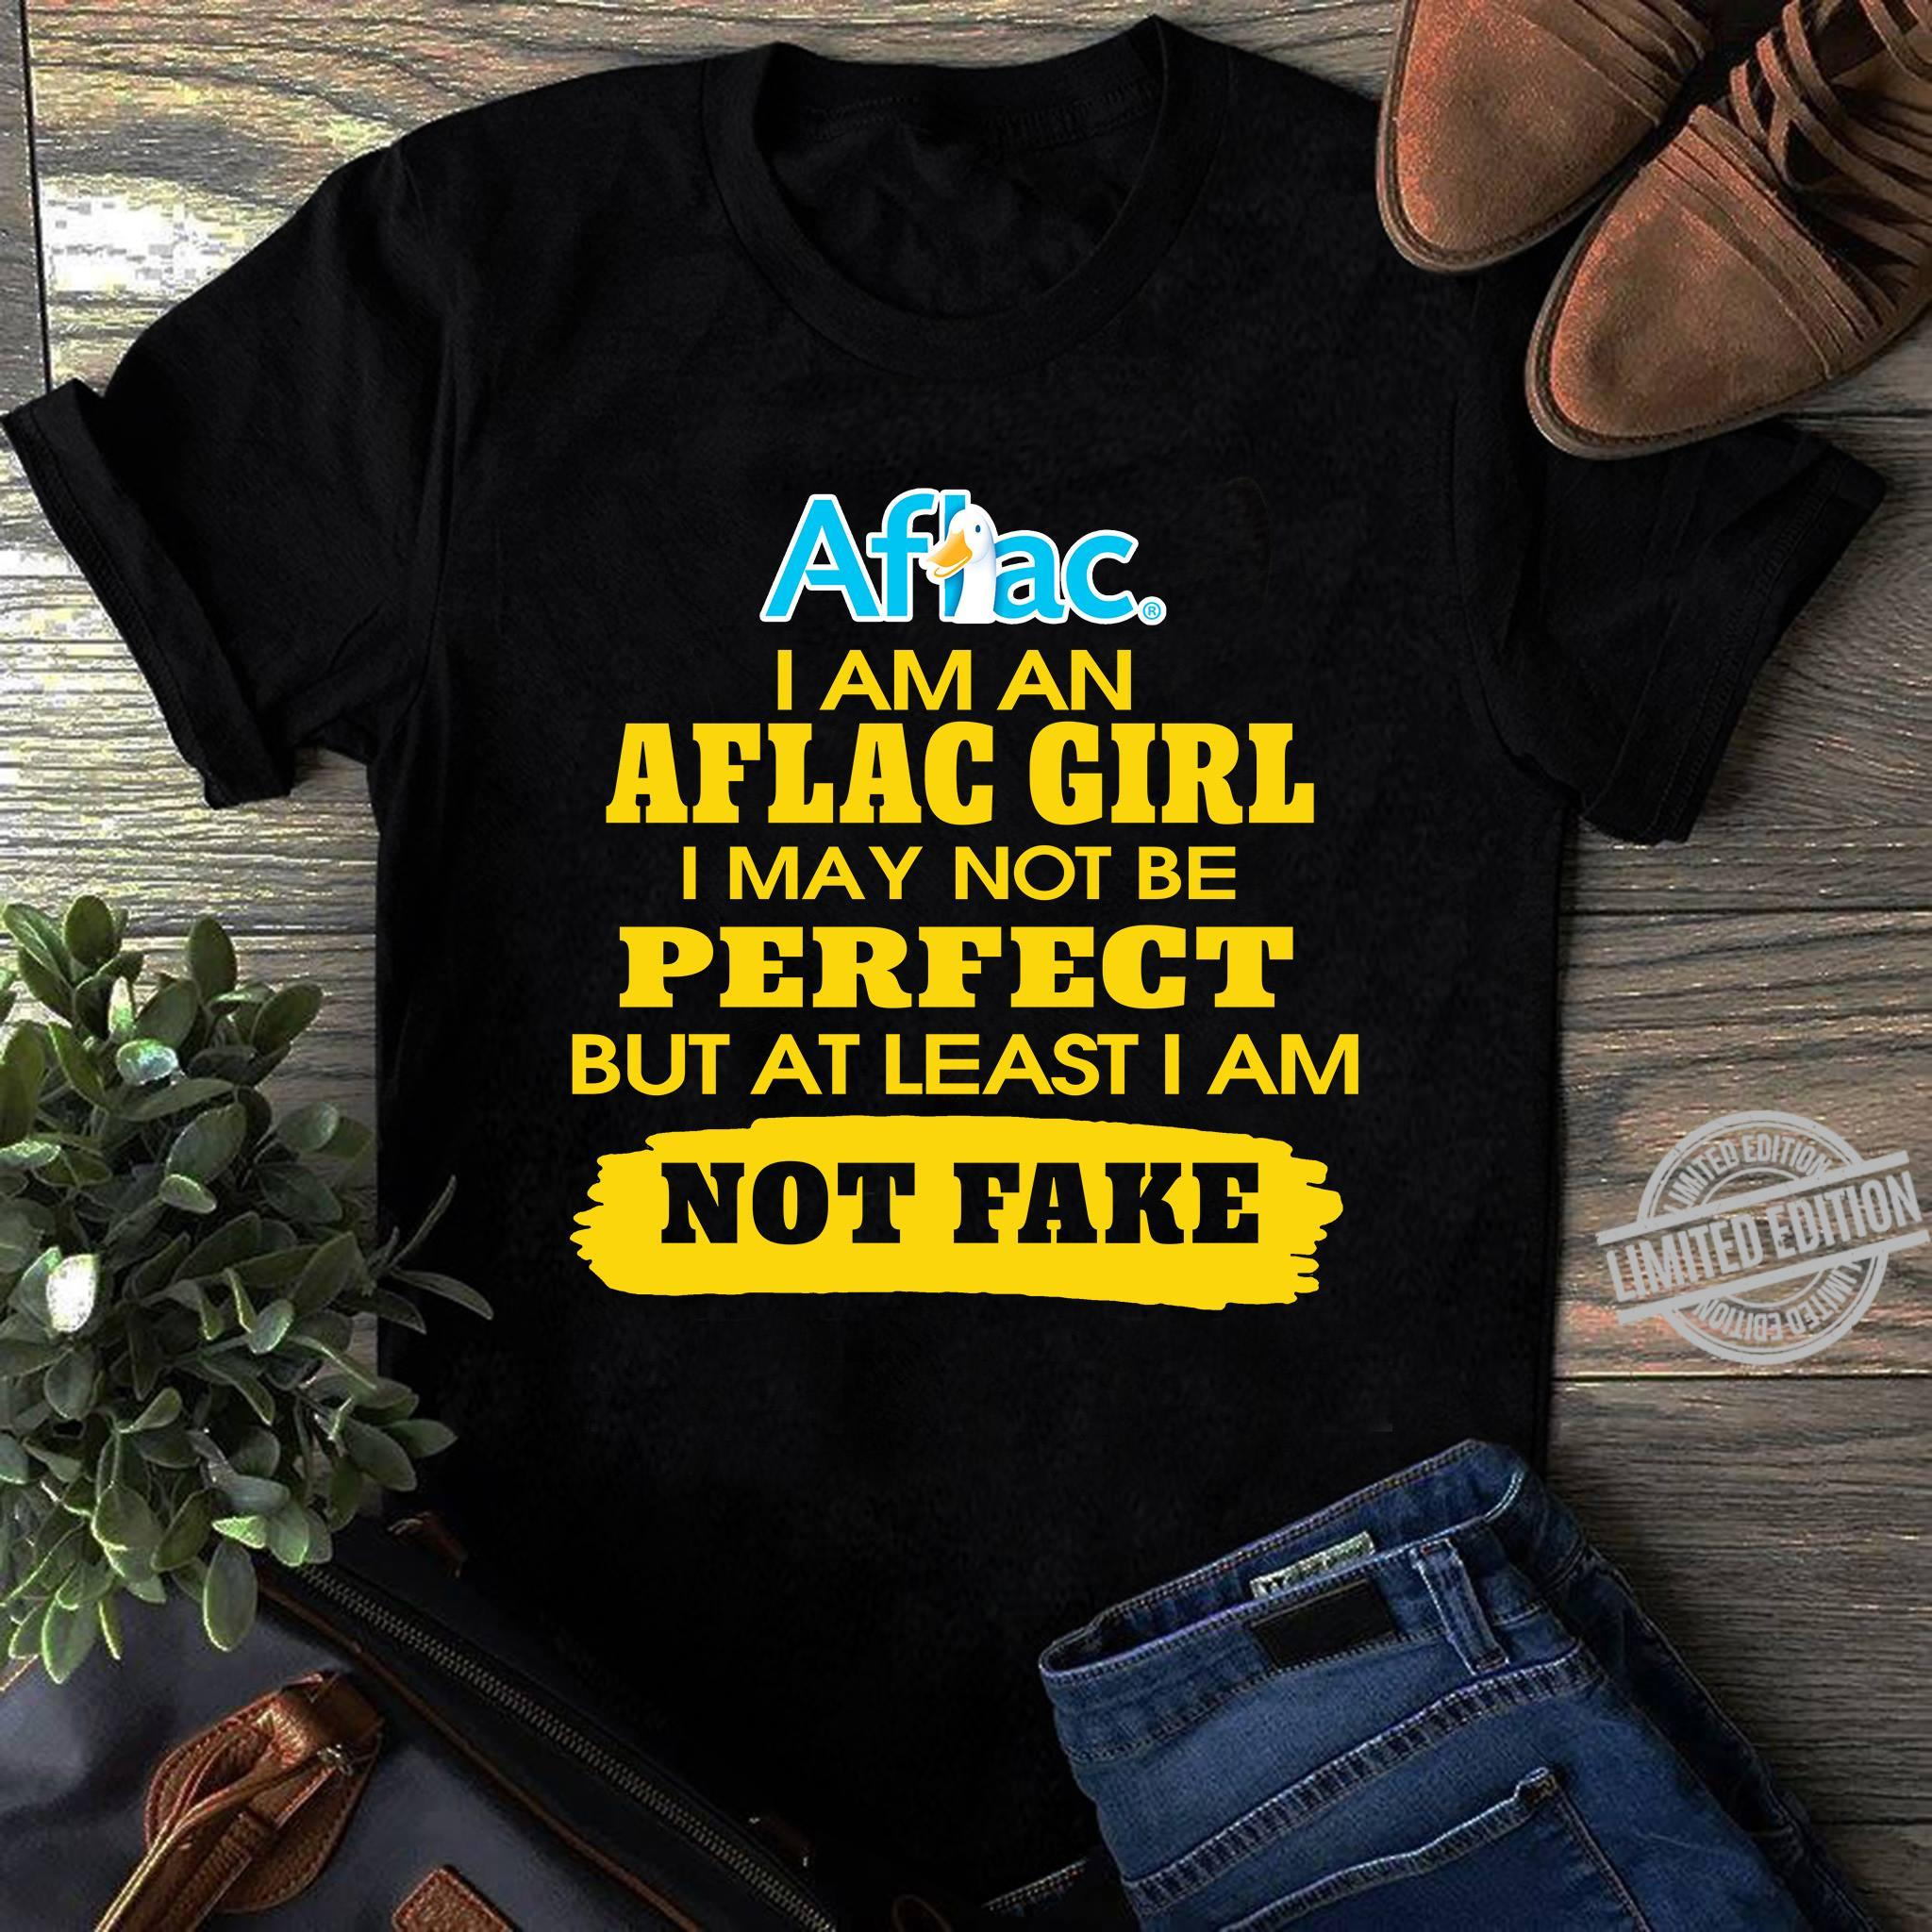 IamAn Aflag Girl I May Not Be Perfect But At Least Iam Not Fake Shirt